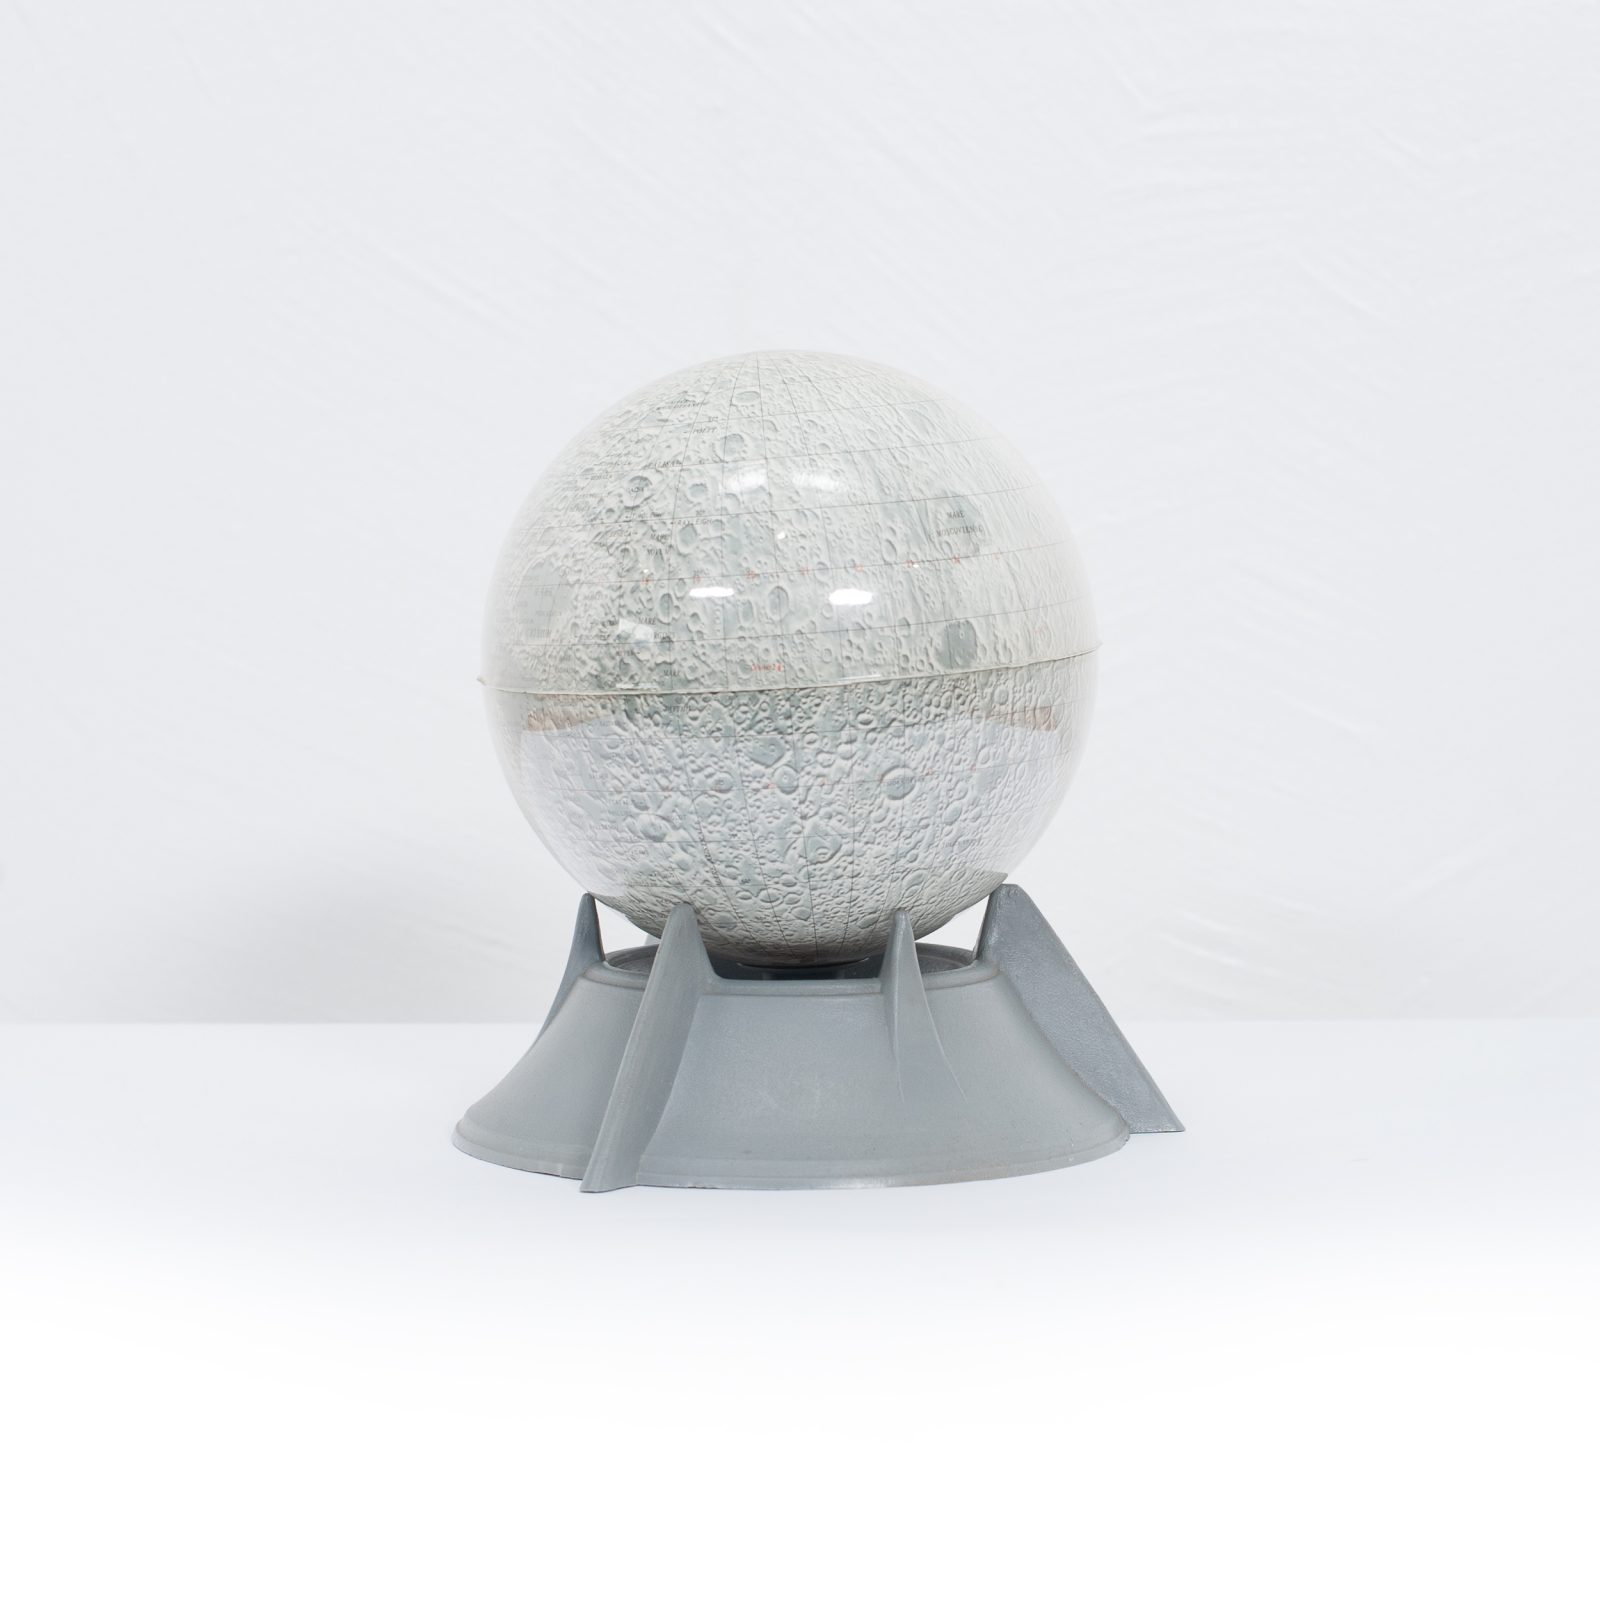 Moon Lamp With Stand, 1950s, The Netherlands 1